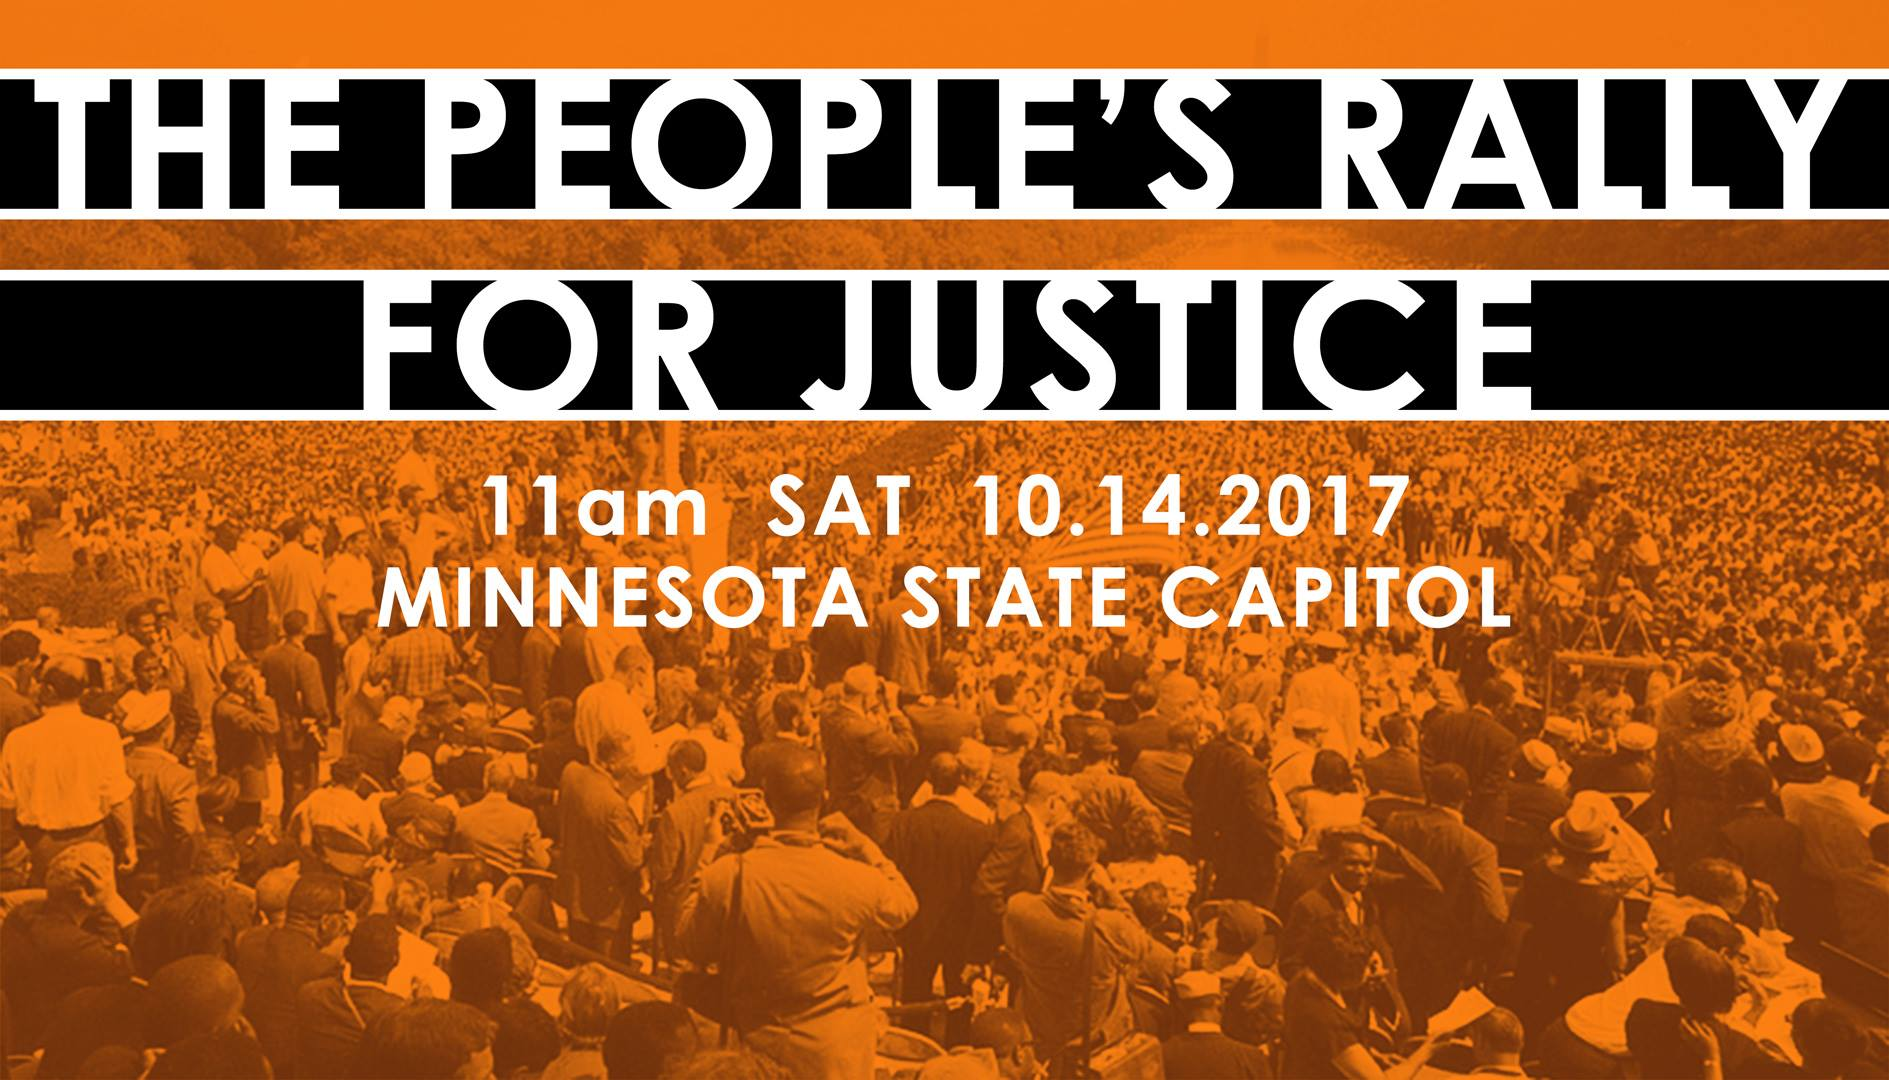 people's rally for justice.jpg